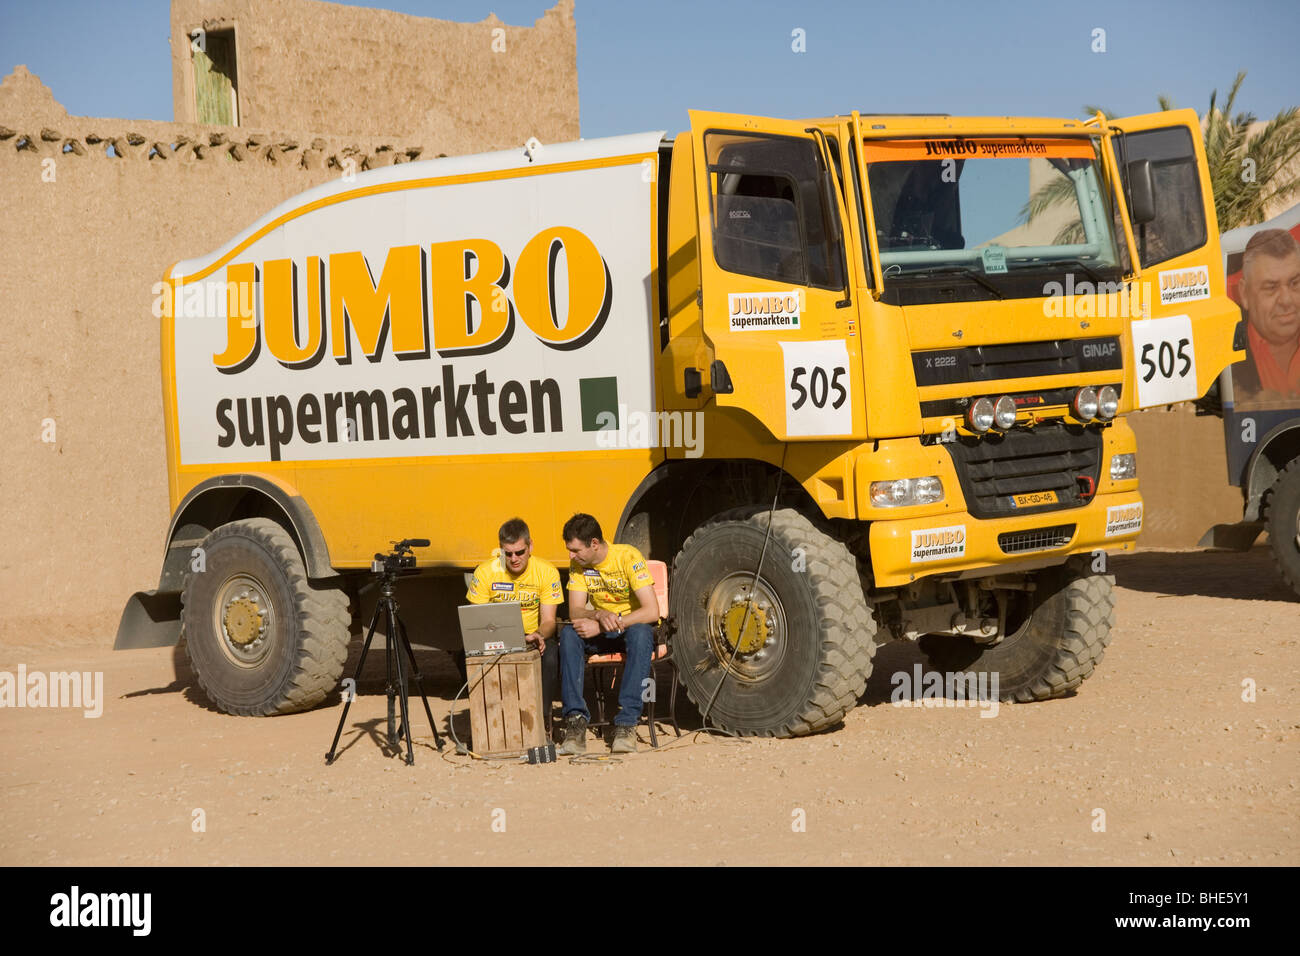 Man working on a laptop by a Desert racing truck at the Yasmina ...